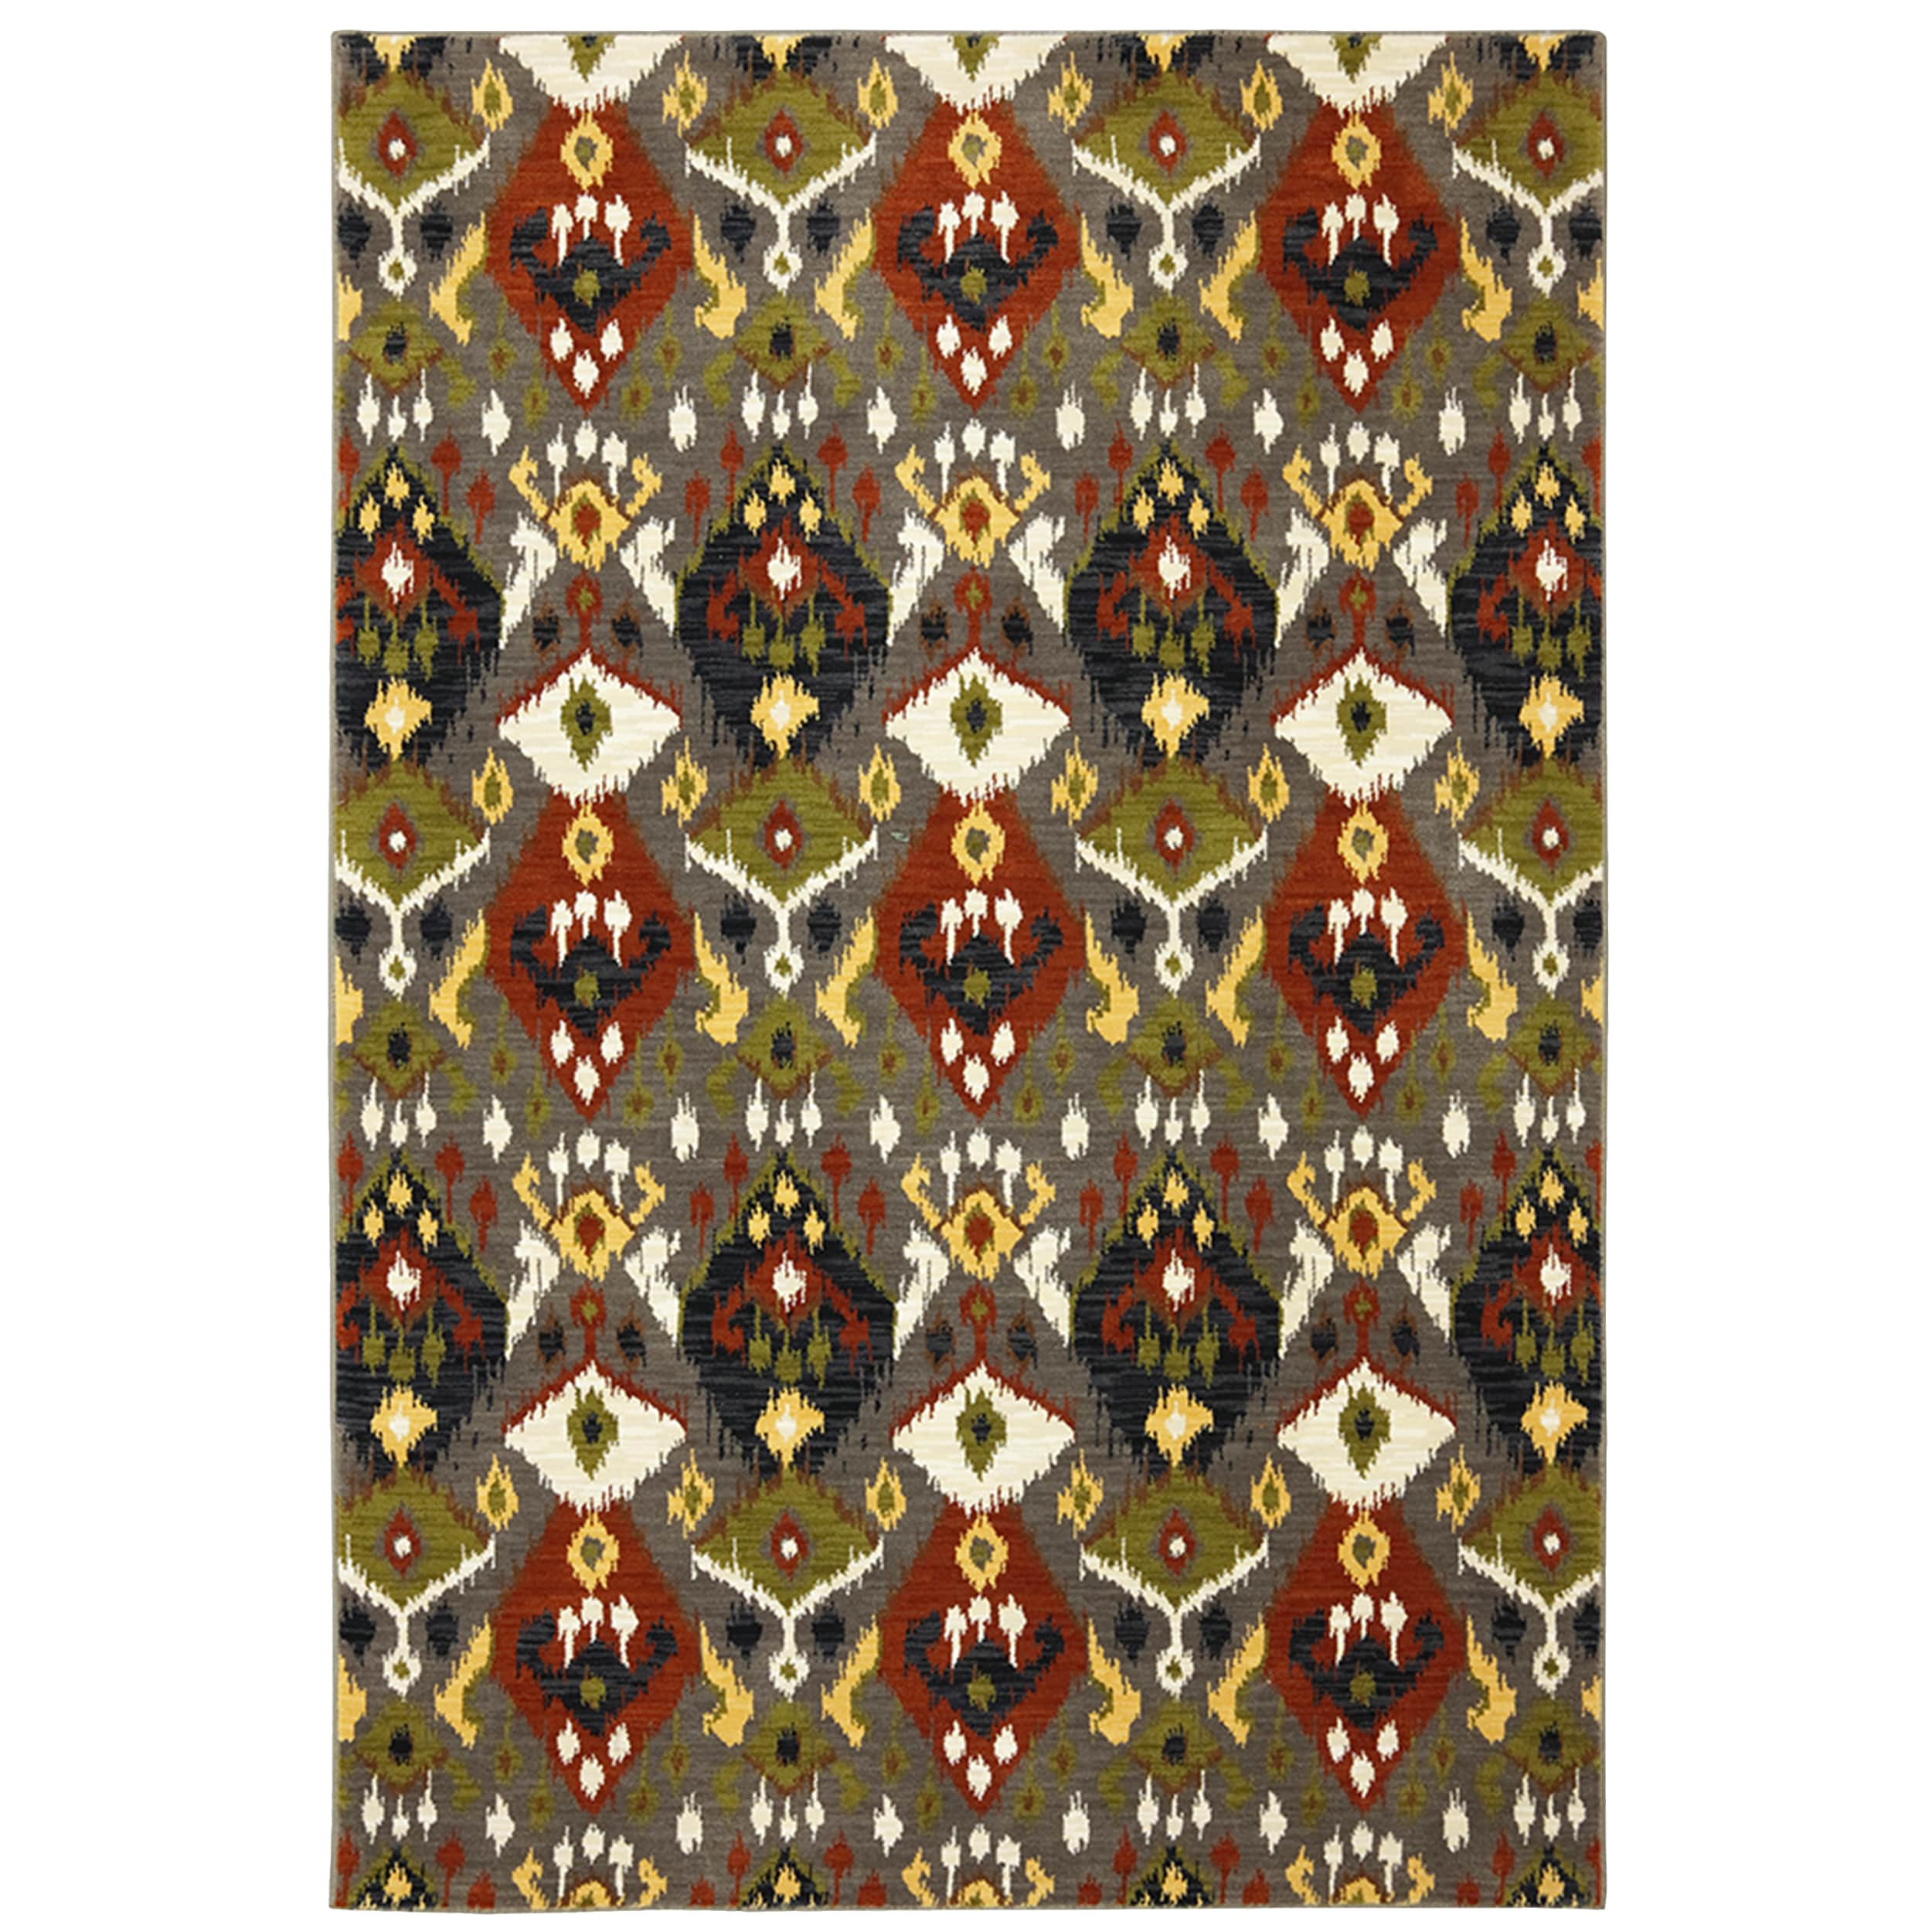 Shop Karastan Panache Switchback Bungee Cord Rug (8 0 x 10 0) - Free  Shipping Today - Overstock.com - 8278776 070dcc453f